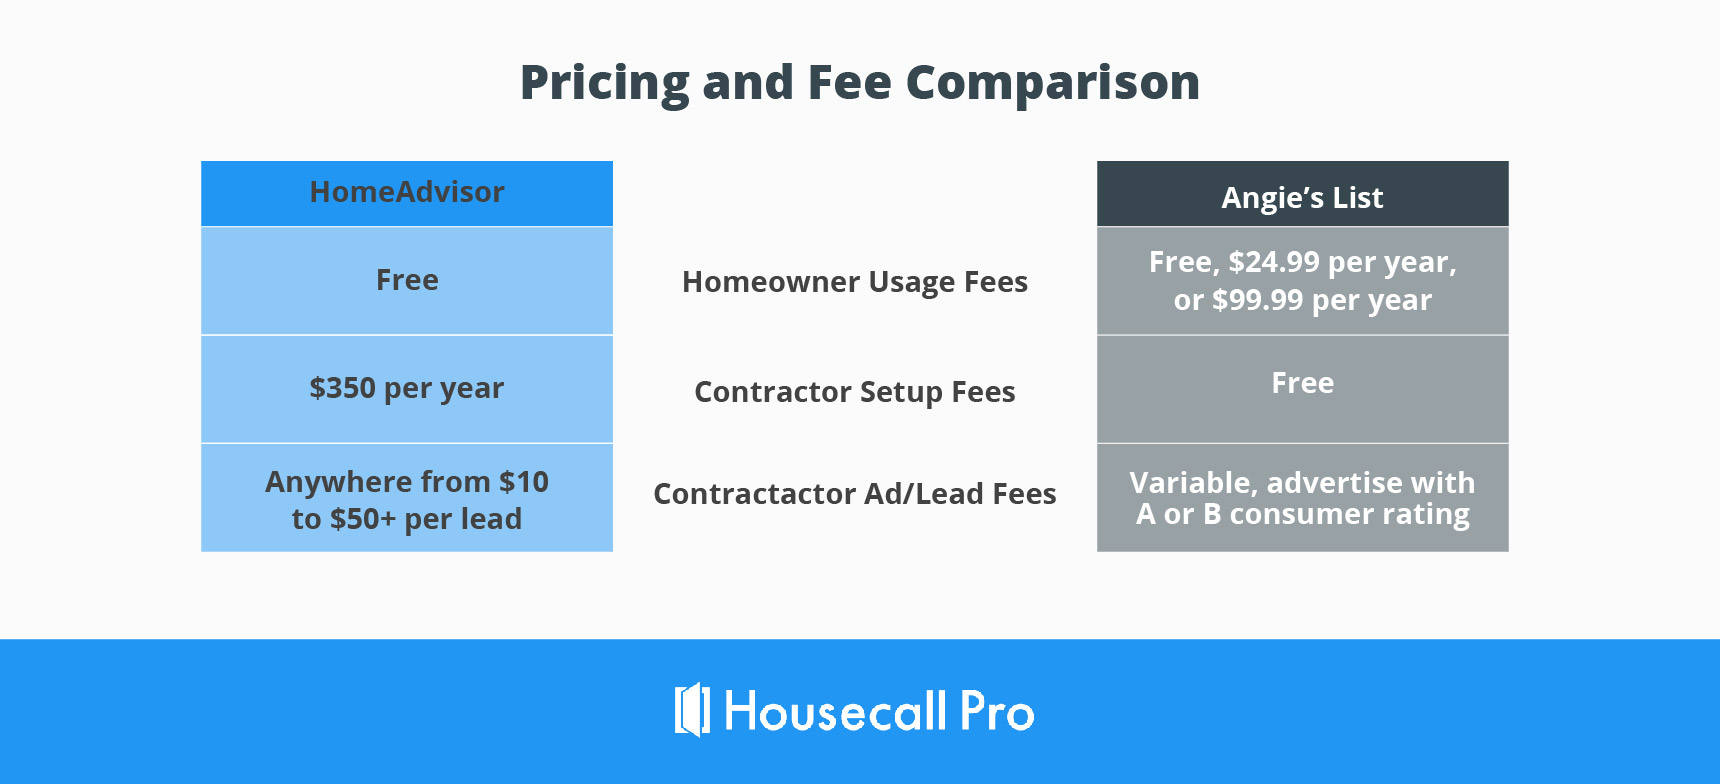 angie's list vs homeadvisor pricing